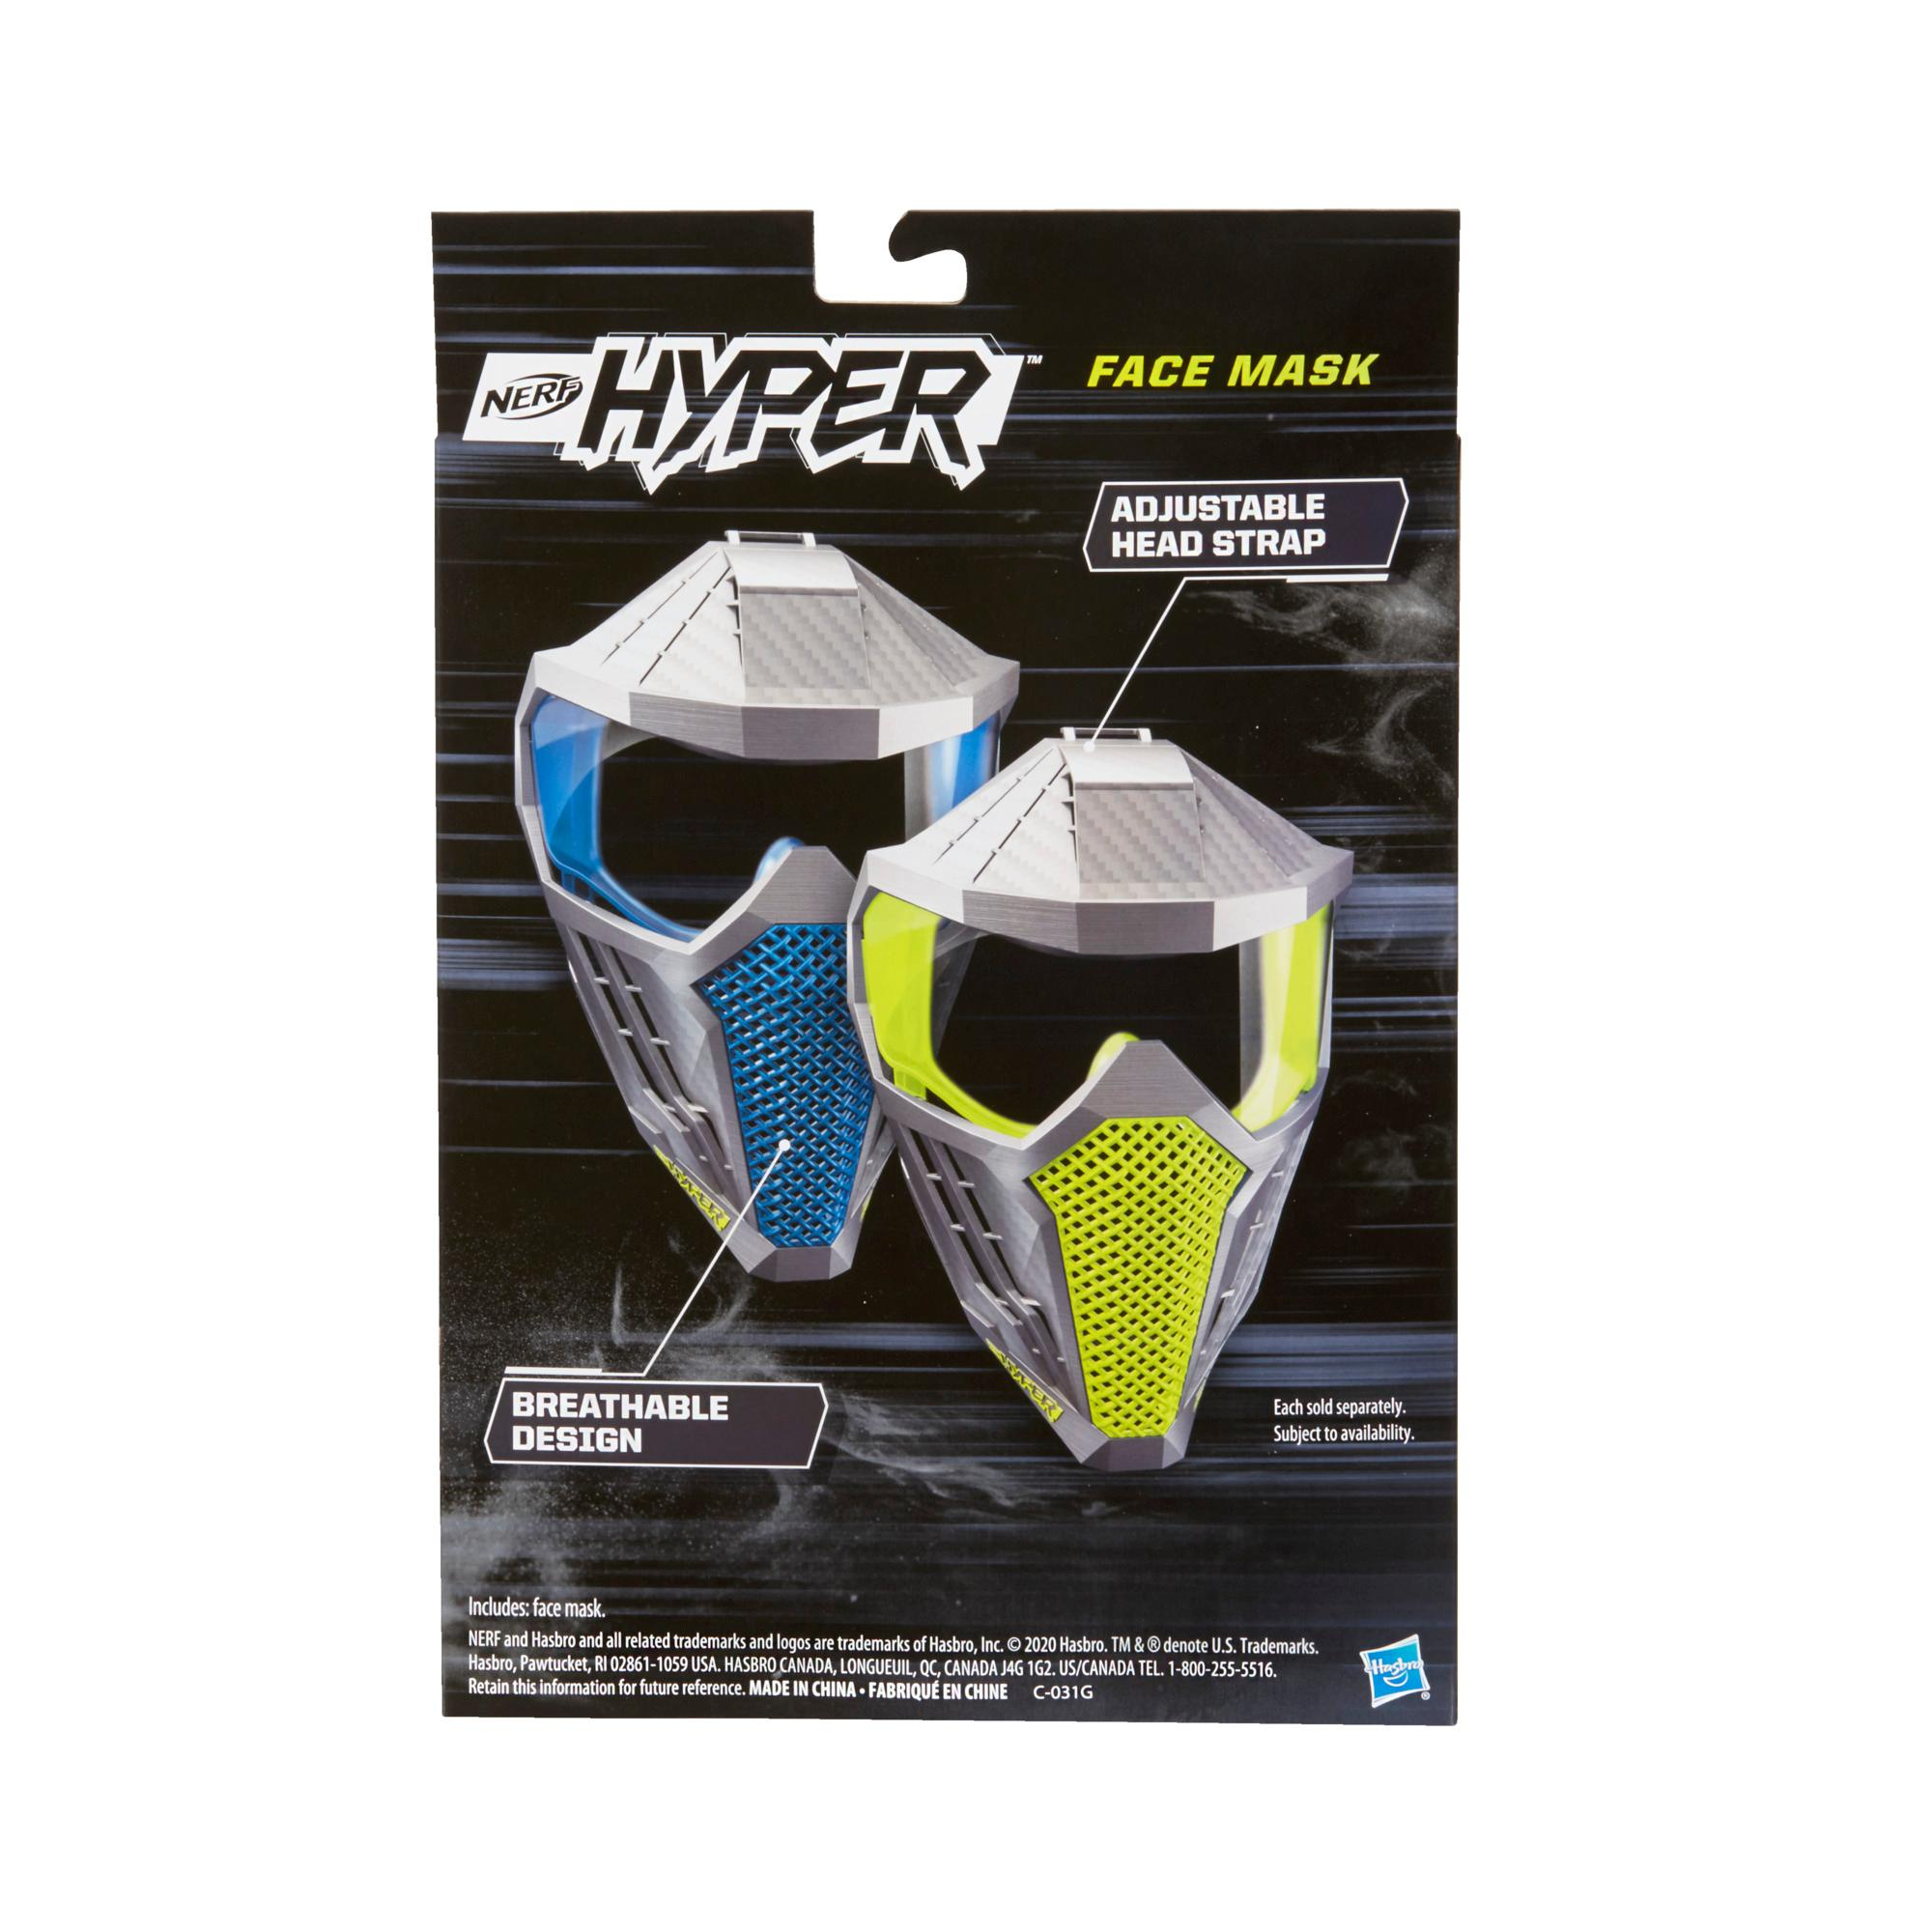 Nerf Hyper Face Mask -- Breathable Design, Adjustable Head Strap, Green Team Color -- For Teens, Adults